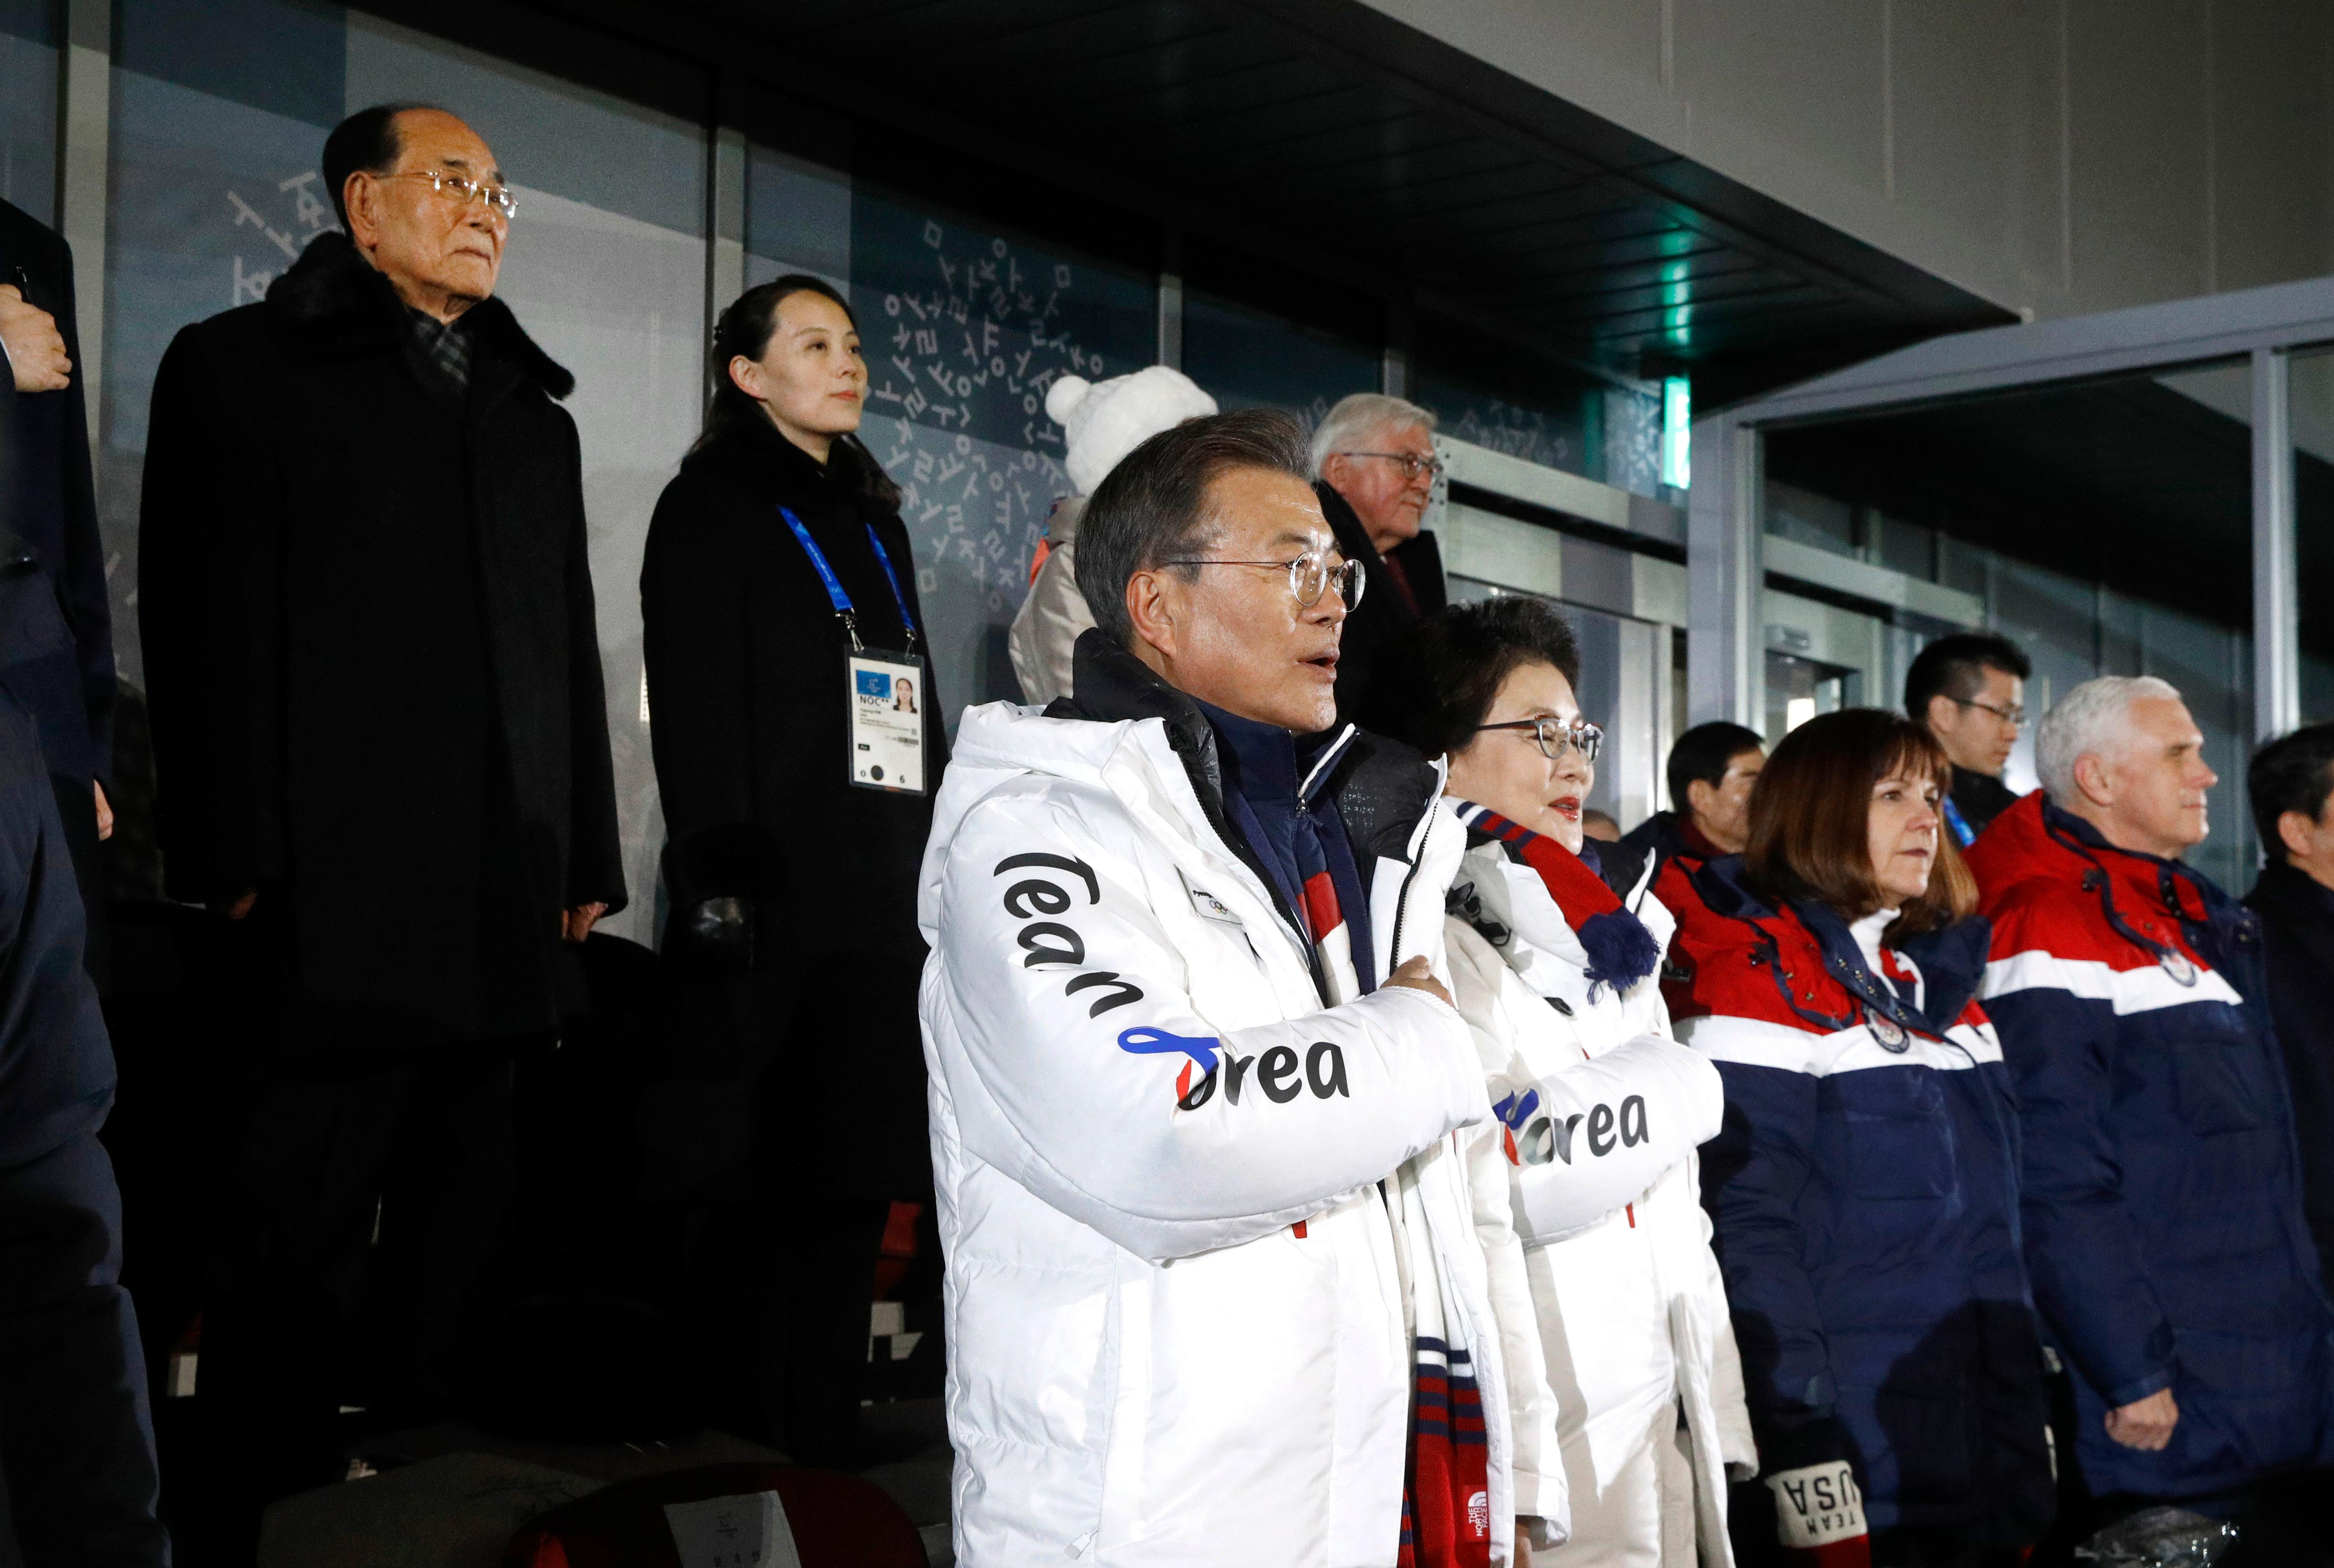 South Korean President Moon Jae-in, center, stands alongside first lady Kim Jung-sook, U.S. second lady Karen Pence and U.S. Vice President Mike Pence as the South Korean national anthem is played at the opening ceremony of the 2018 Winter Olympics in Pyeongchang, South Korea, Friday, Feb. 9, 2018. Standing at top left is Kim Yong Nam, president of the Presidium of North Korean Parliament, and Kim Yo Jong, sister of North Korean leader Kim Jong Un. (AP Photo/Patrick Semansky, Pool)